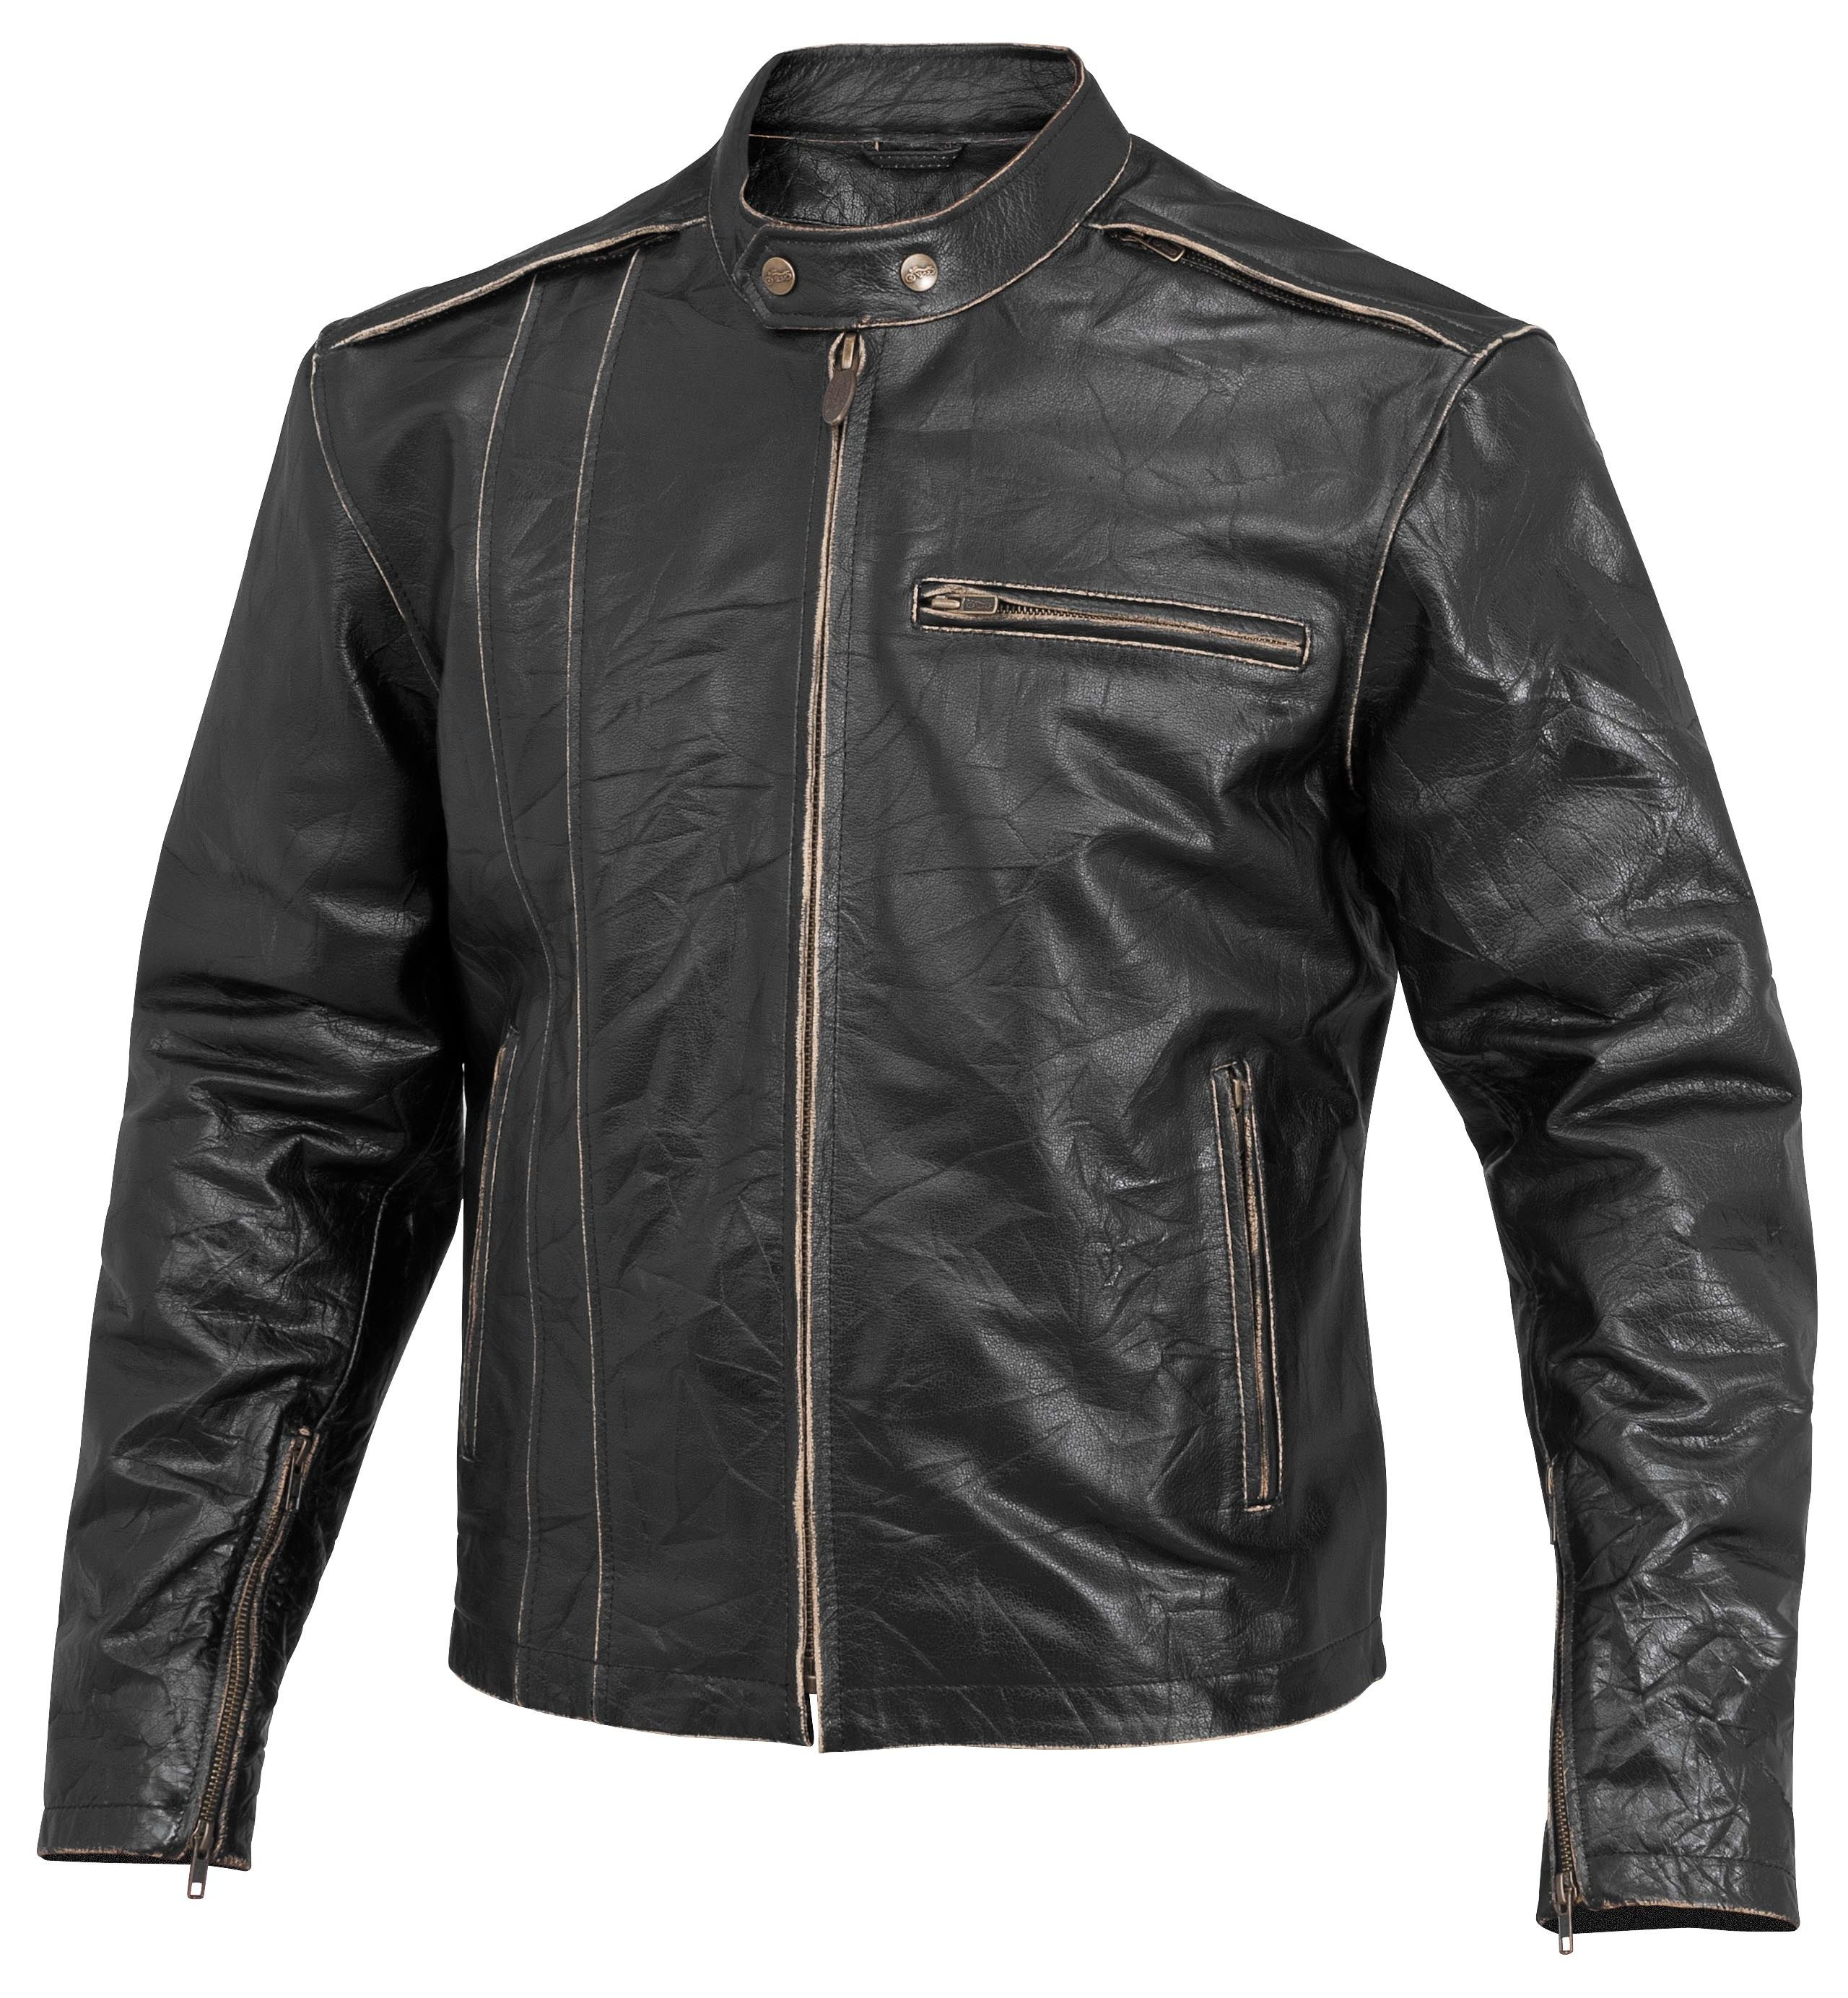 River road leather motorcycle jacket